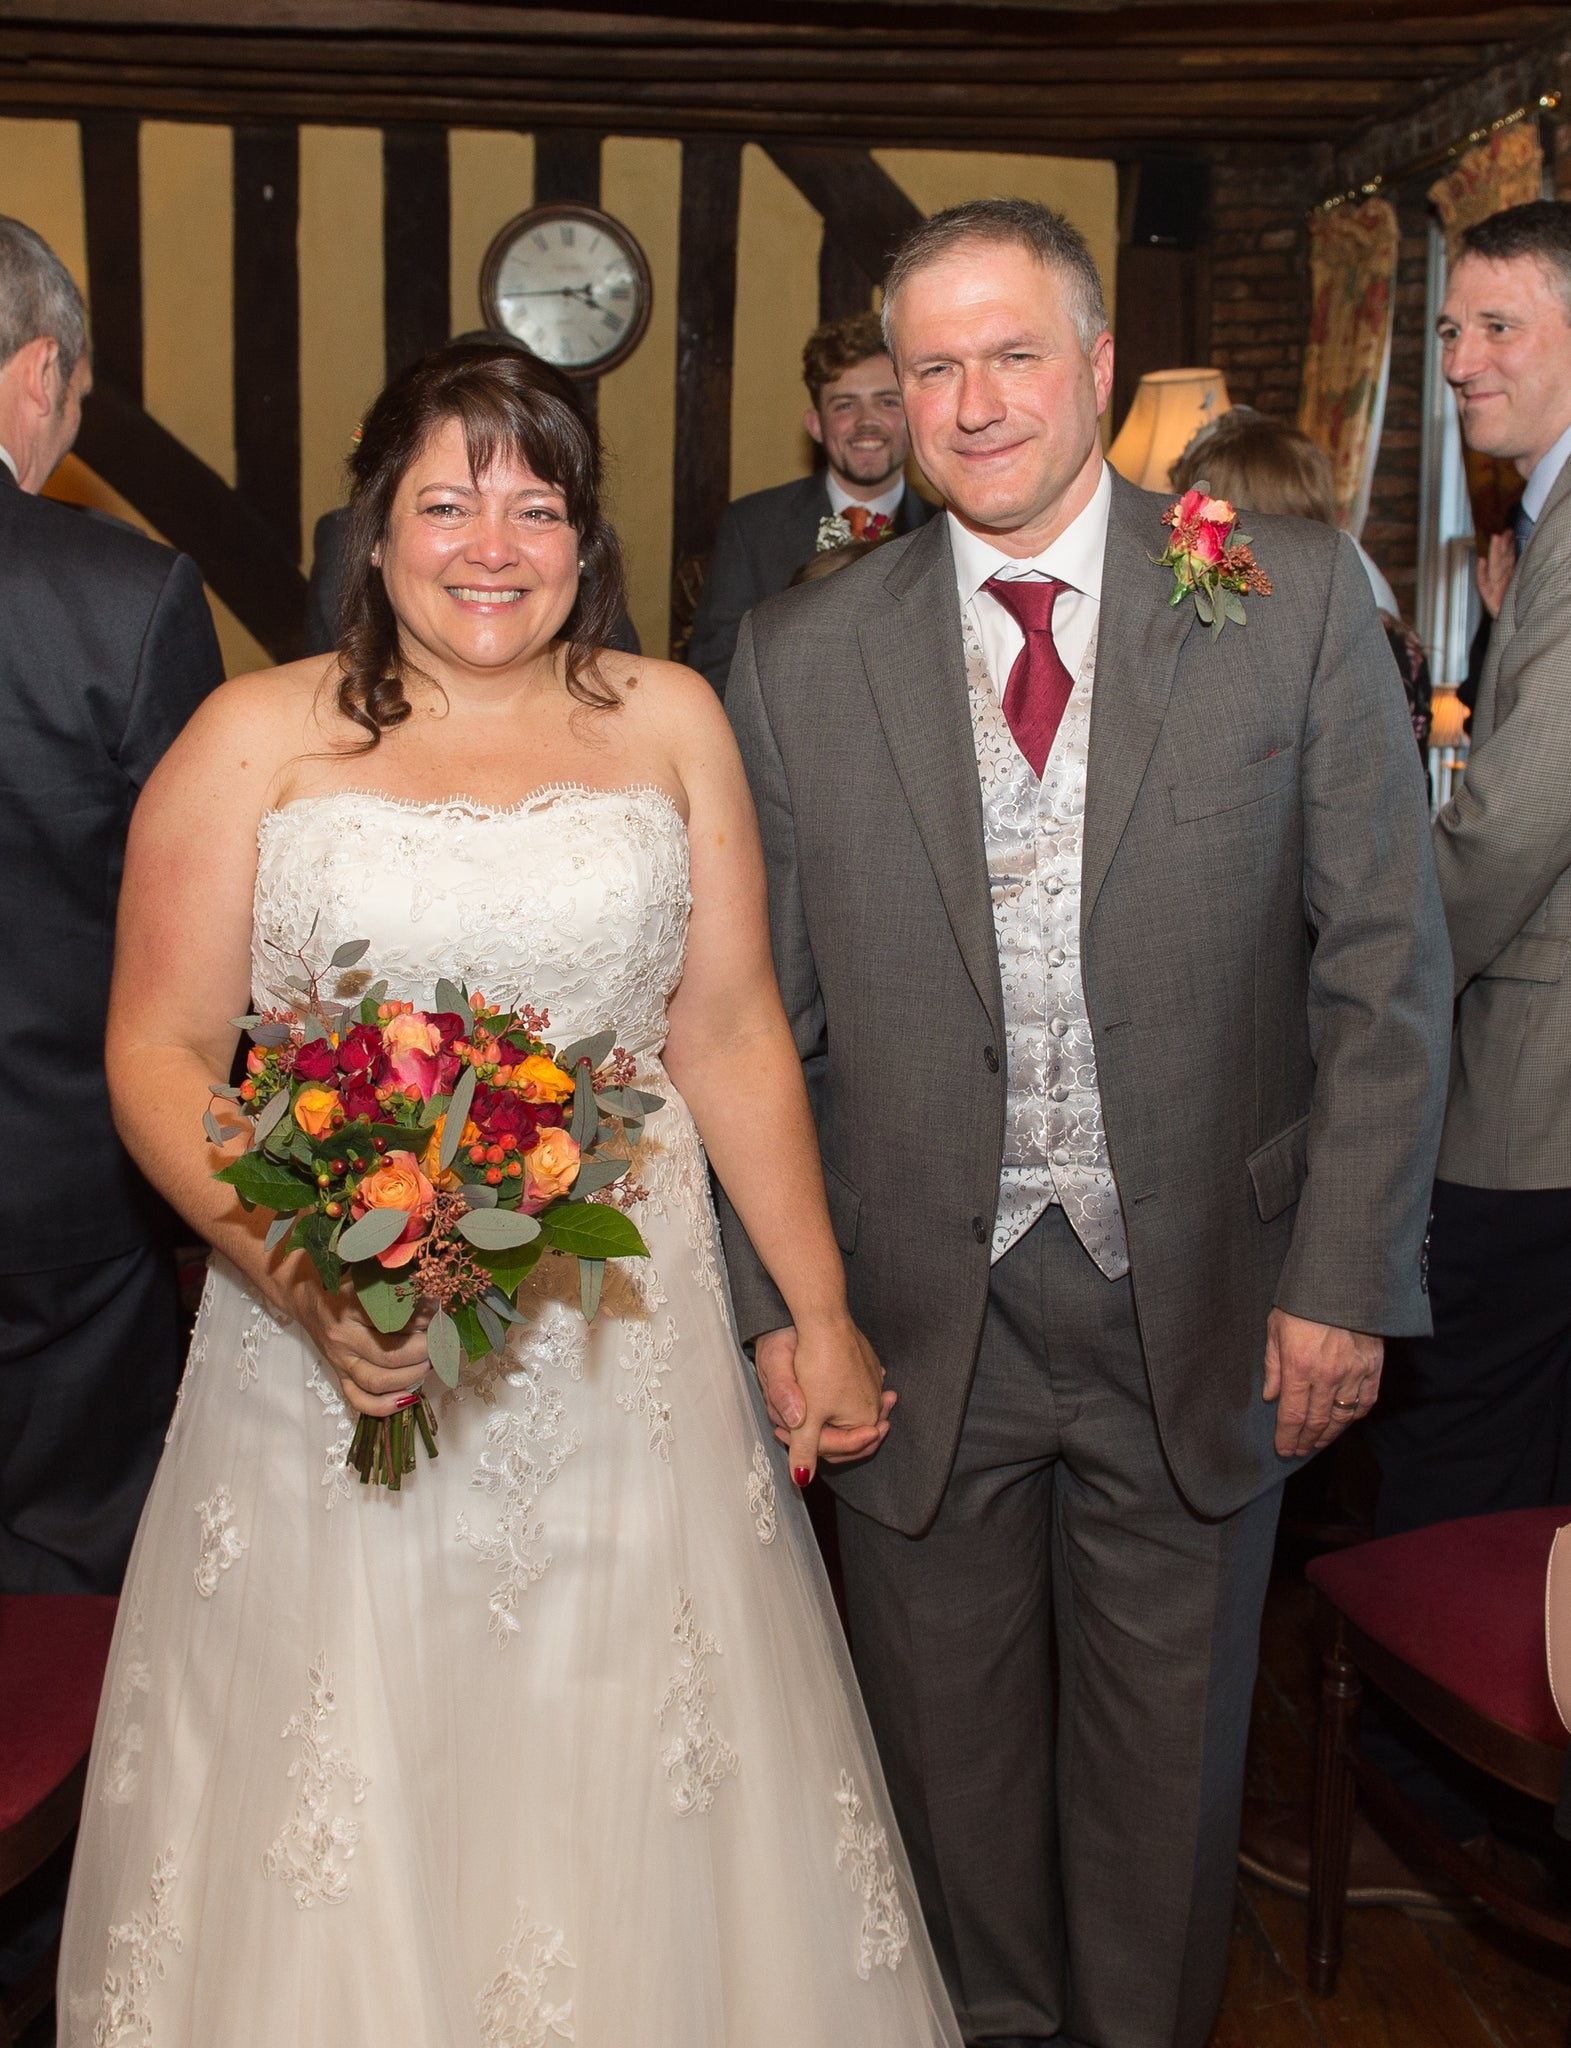 Ruth and Brian Wedding Flowers November 2017